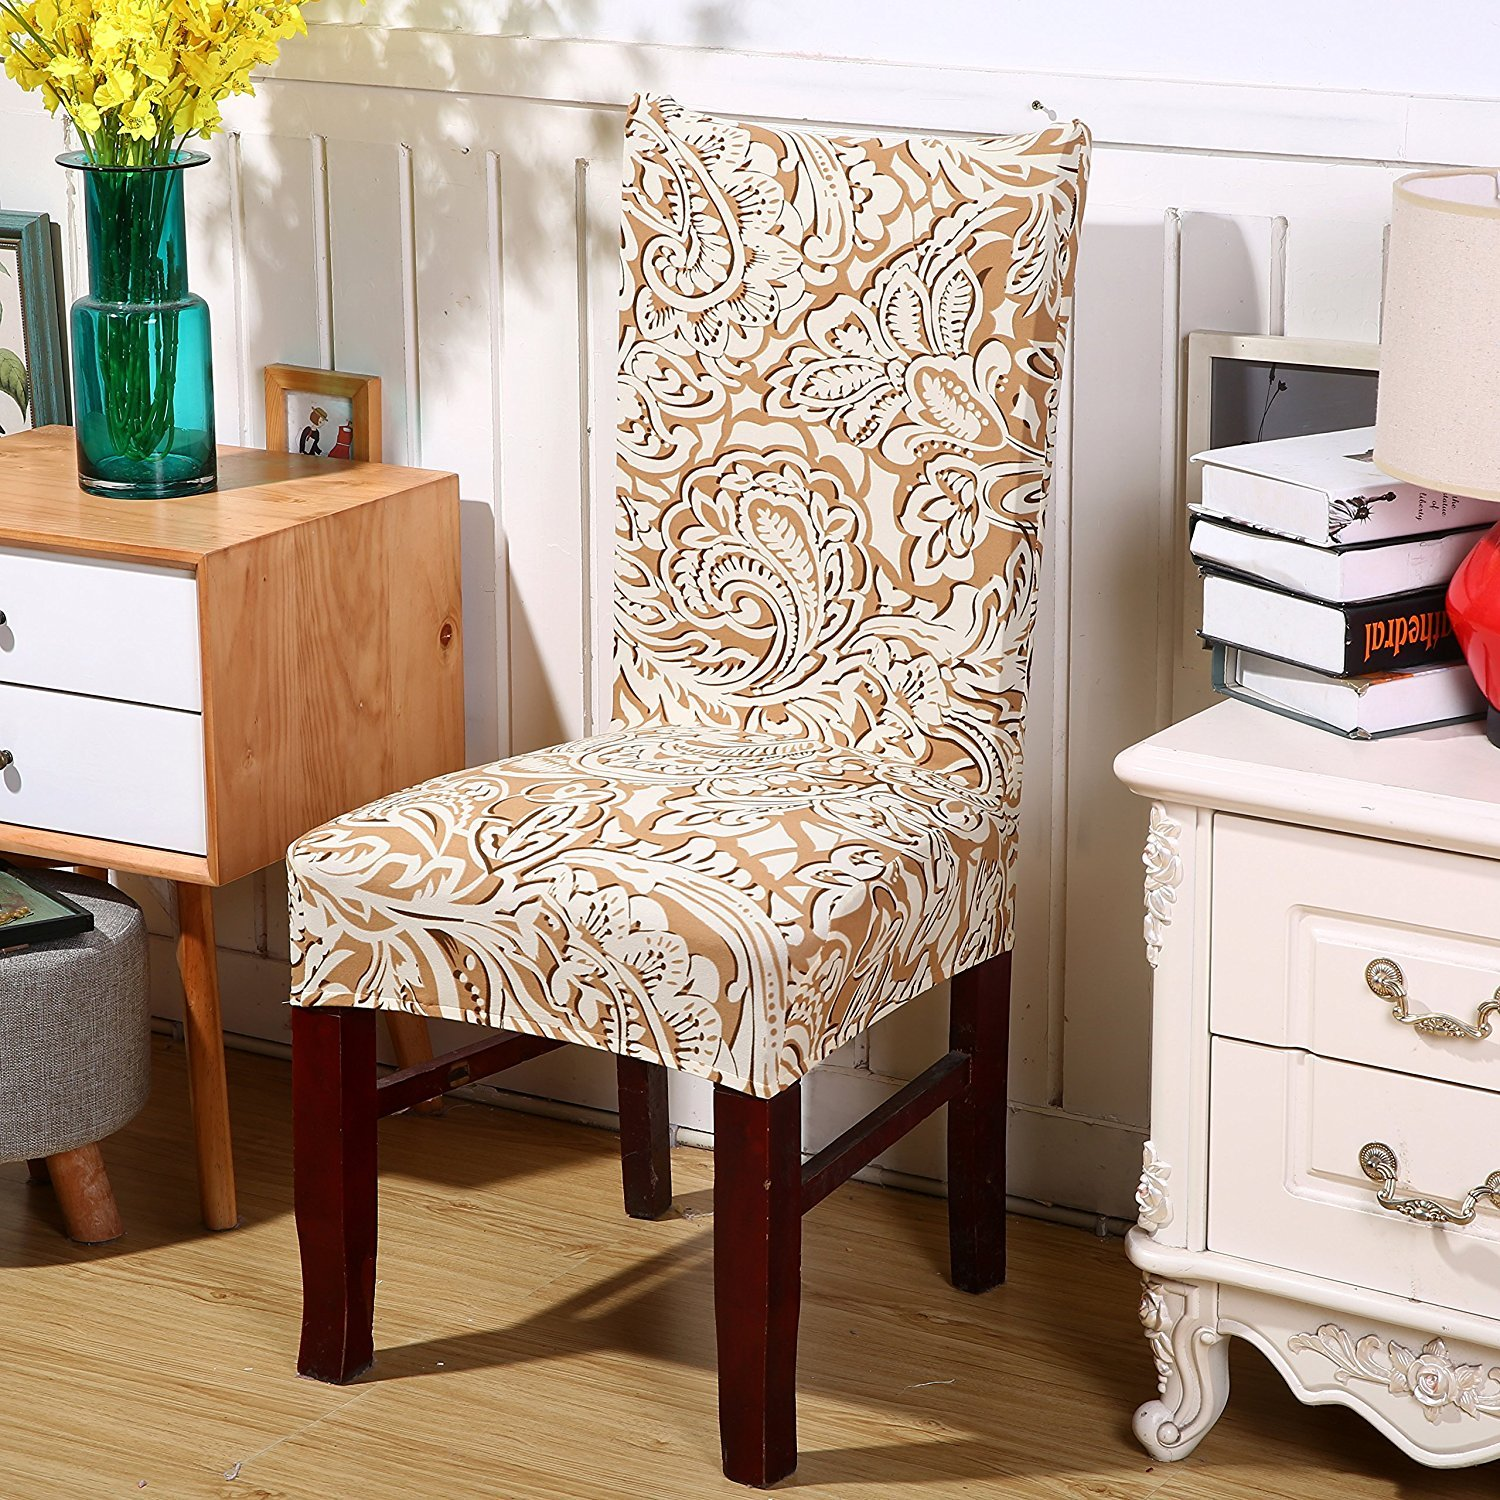 Deisy Dee Stretch Chair Cover Removable Washable for Hotel Dining Room Ceremony Chair Slipcovers Pack of 6 (D) by Deisy Dee (Image #4)